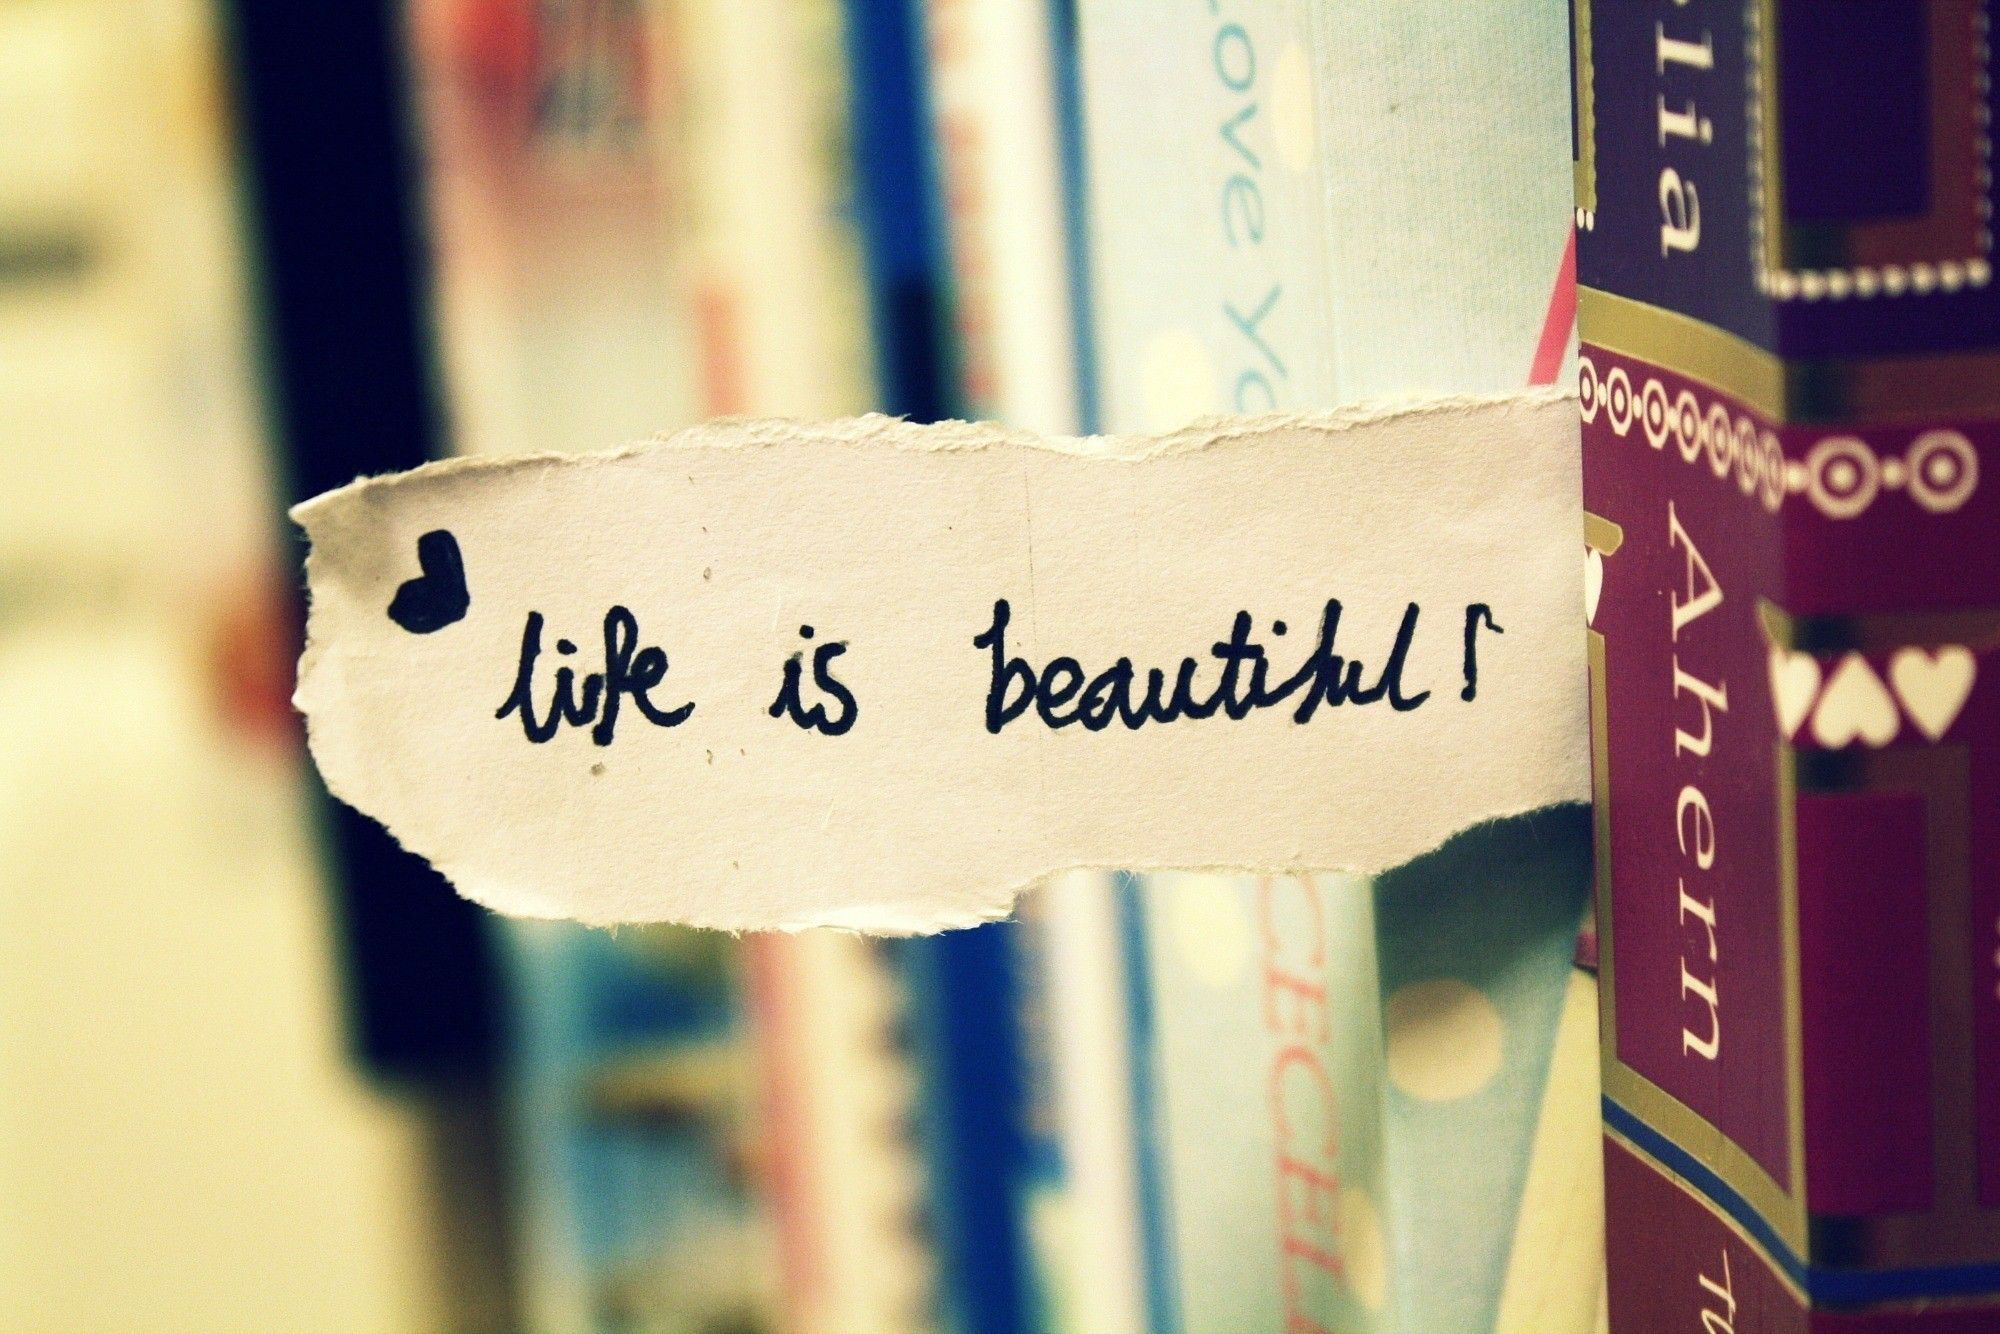 pin by nikhil yadav on quotes | pinterest | cover photos, facebook